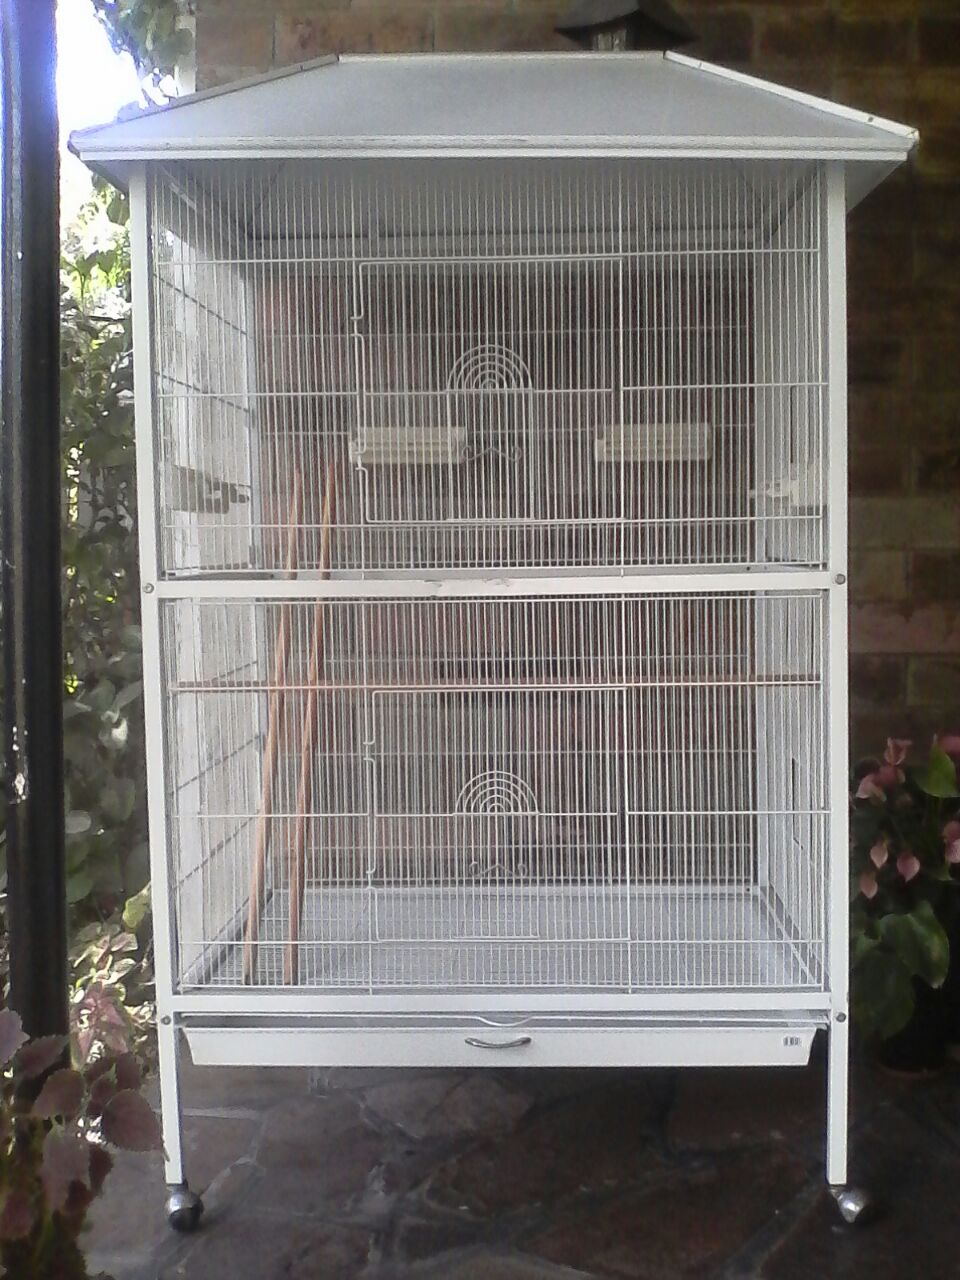 Mobile small - medium bird aviary